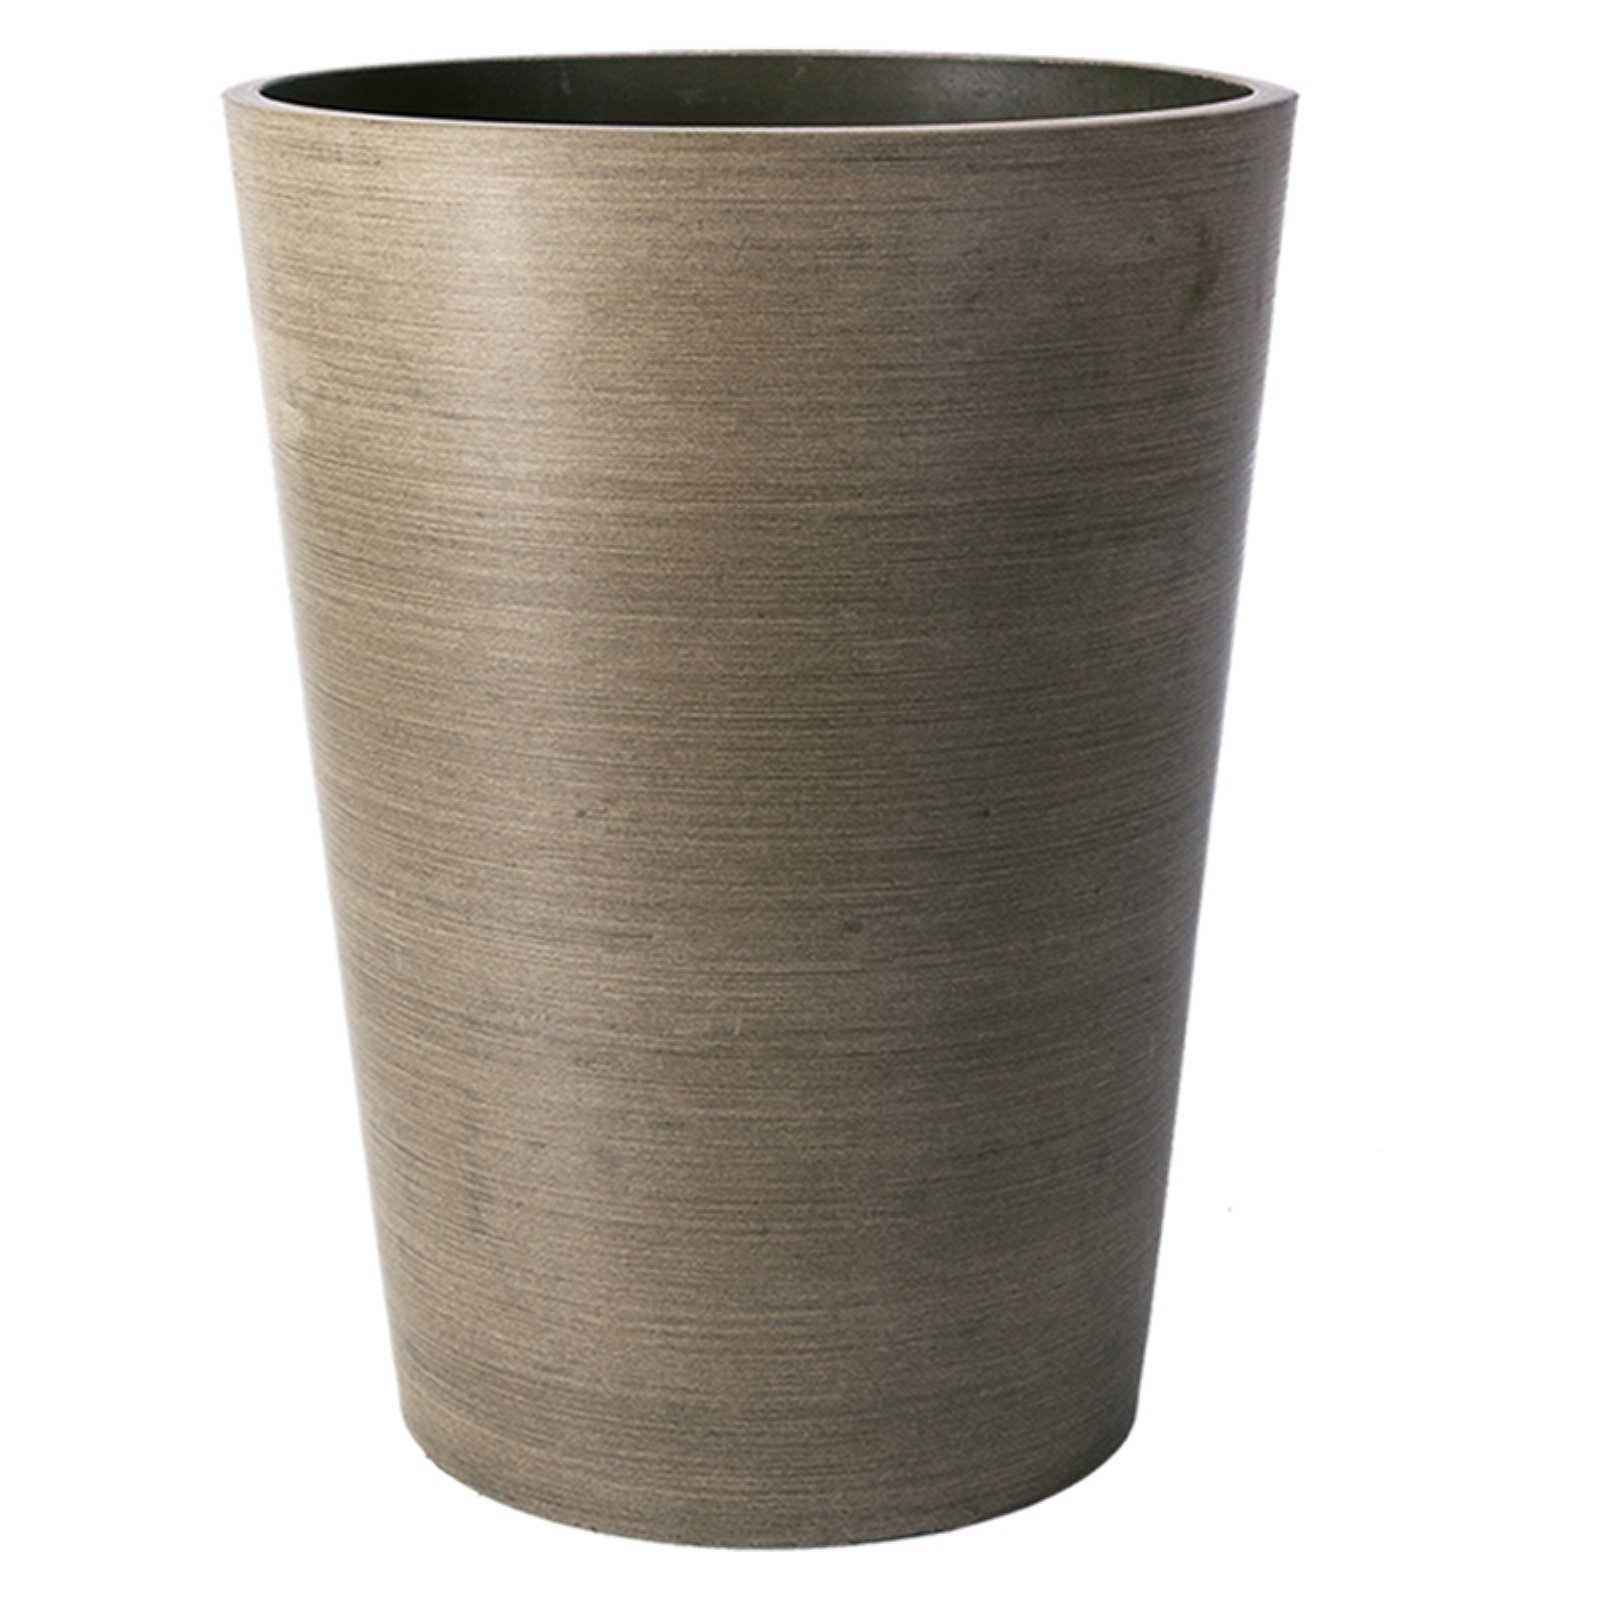 Algreen Valencia Textured Planter